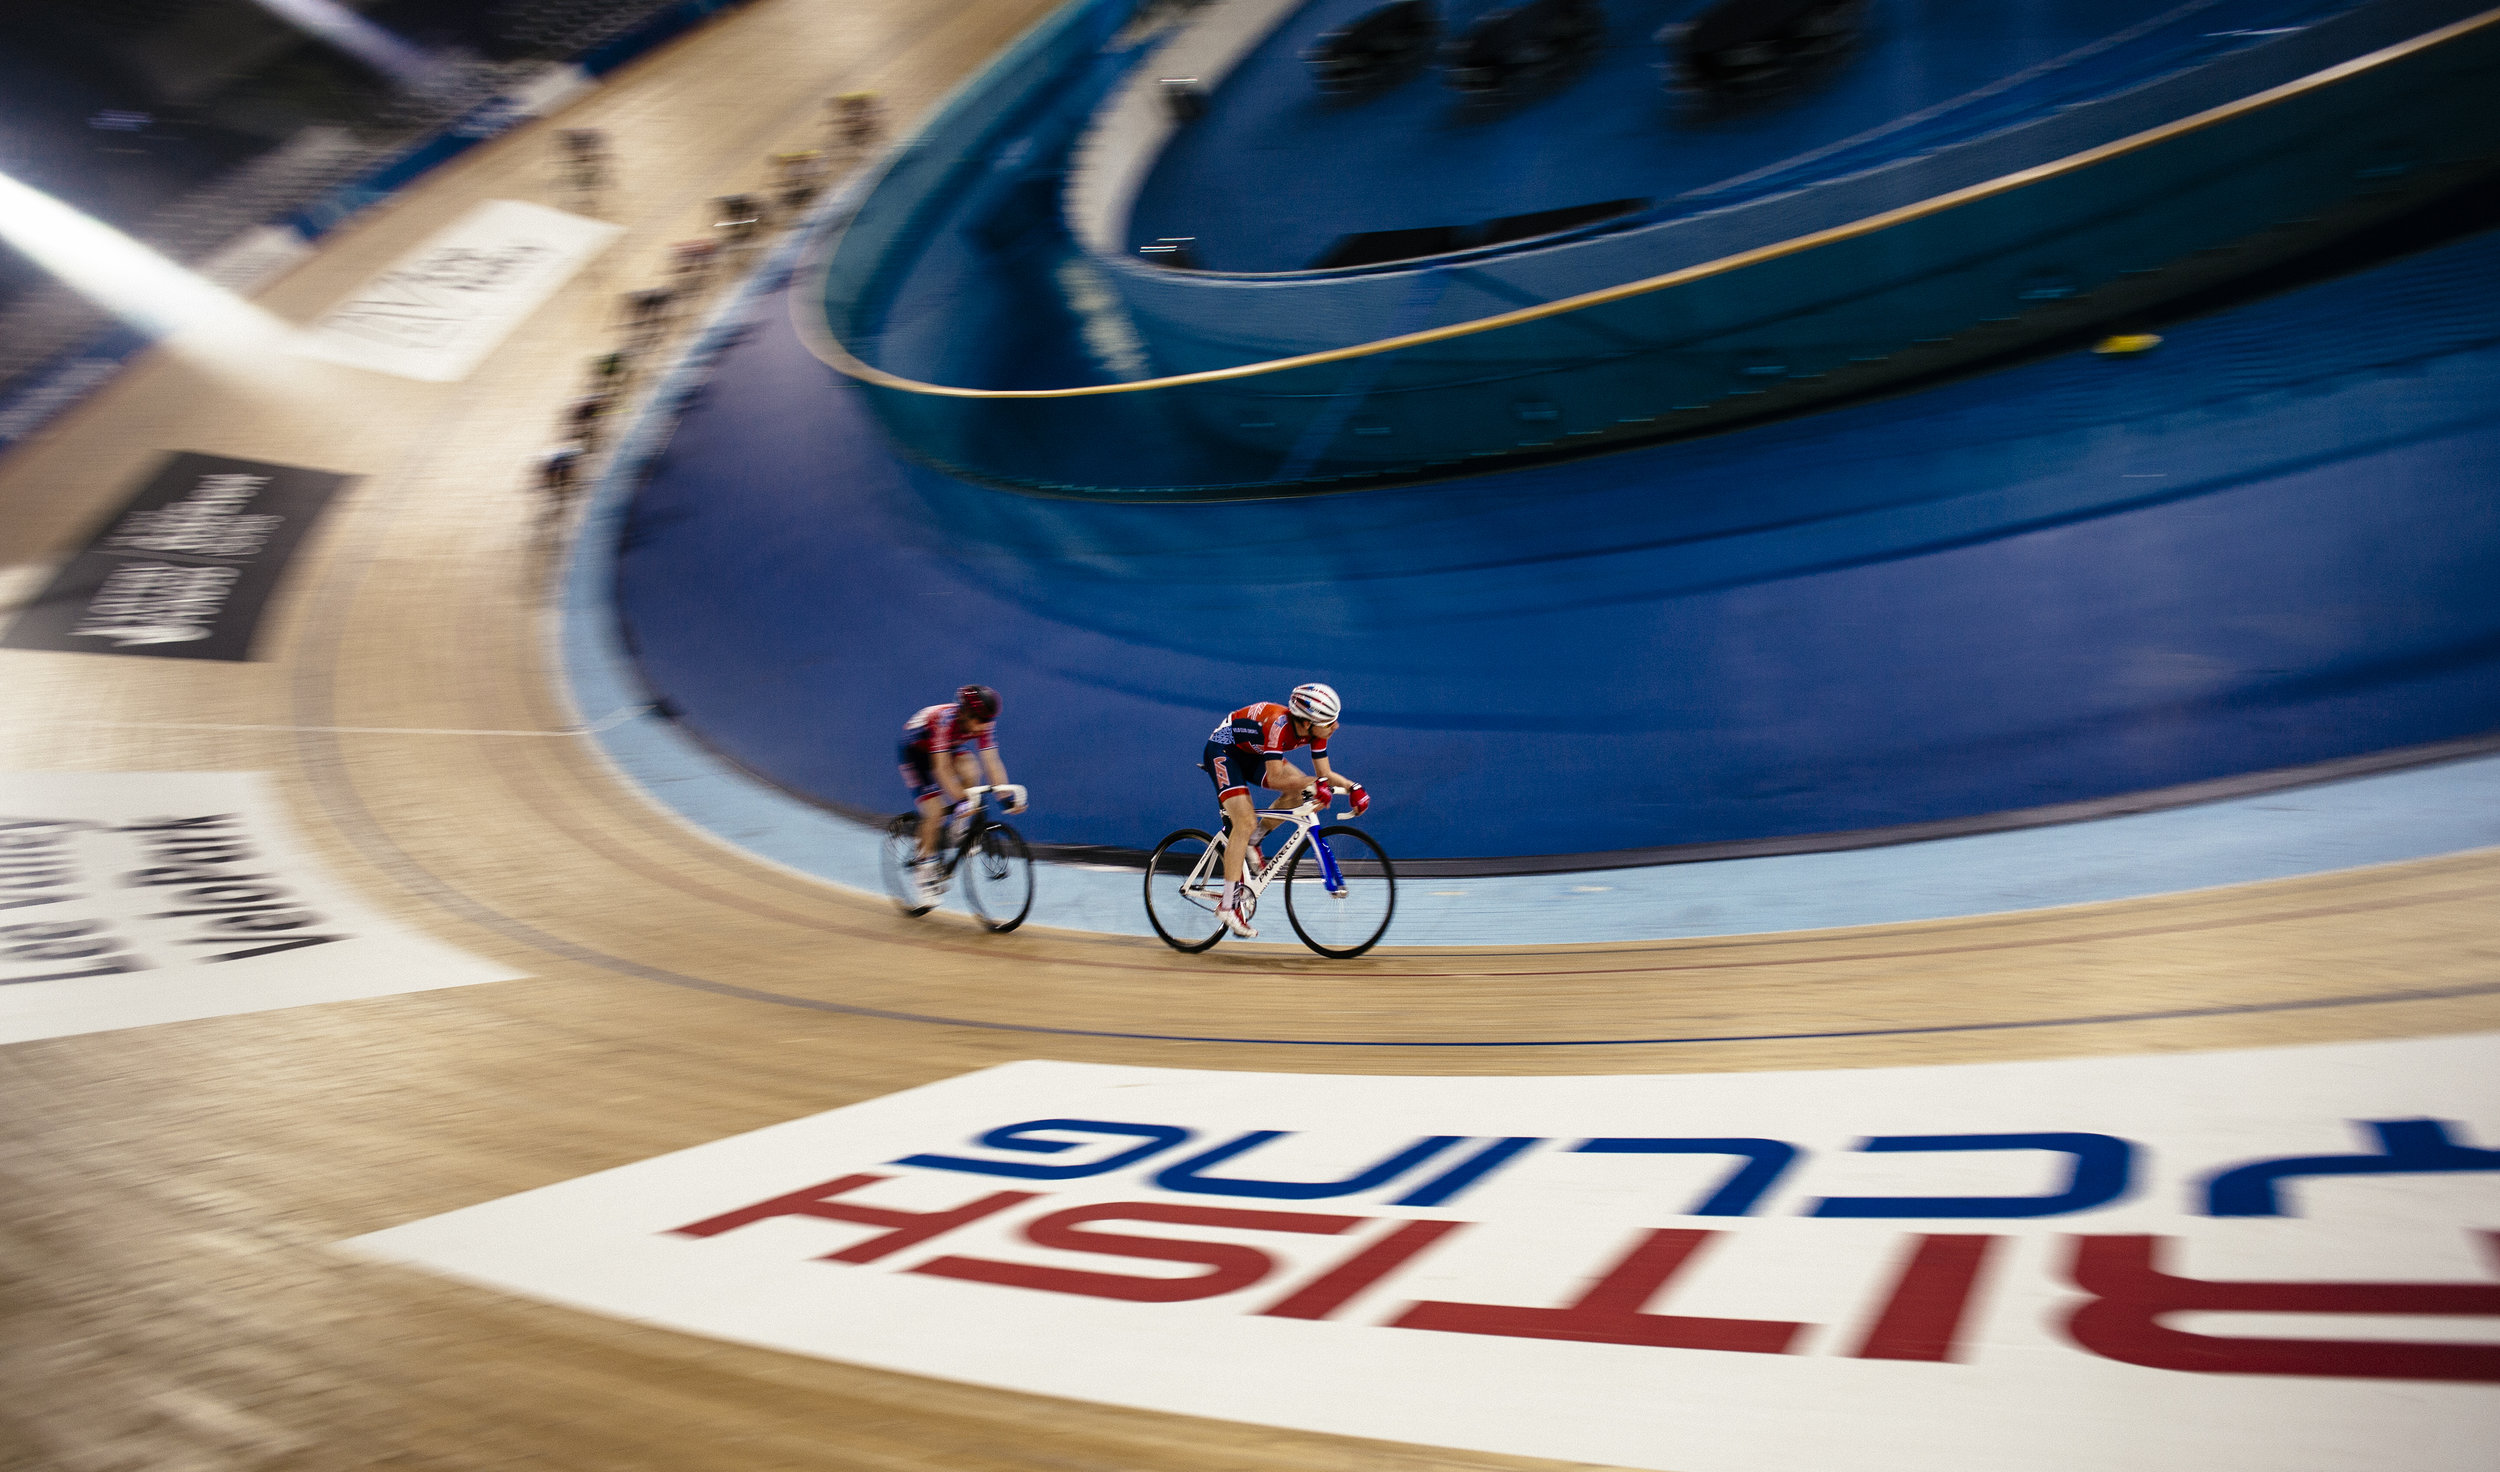 Competitors round the track during an amateur competition at the Lee Valley Velodrome, London, Tuesday, Dec. 1, 2015.